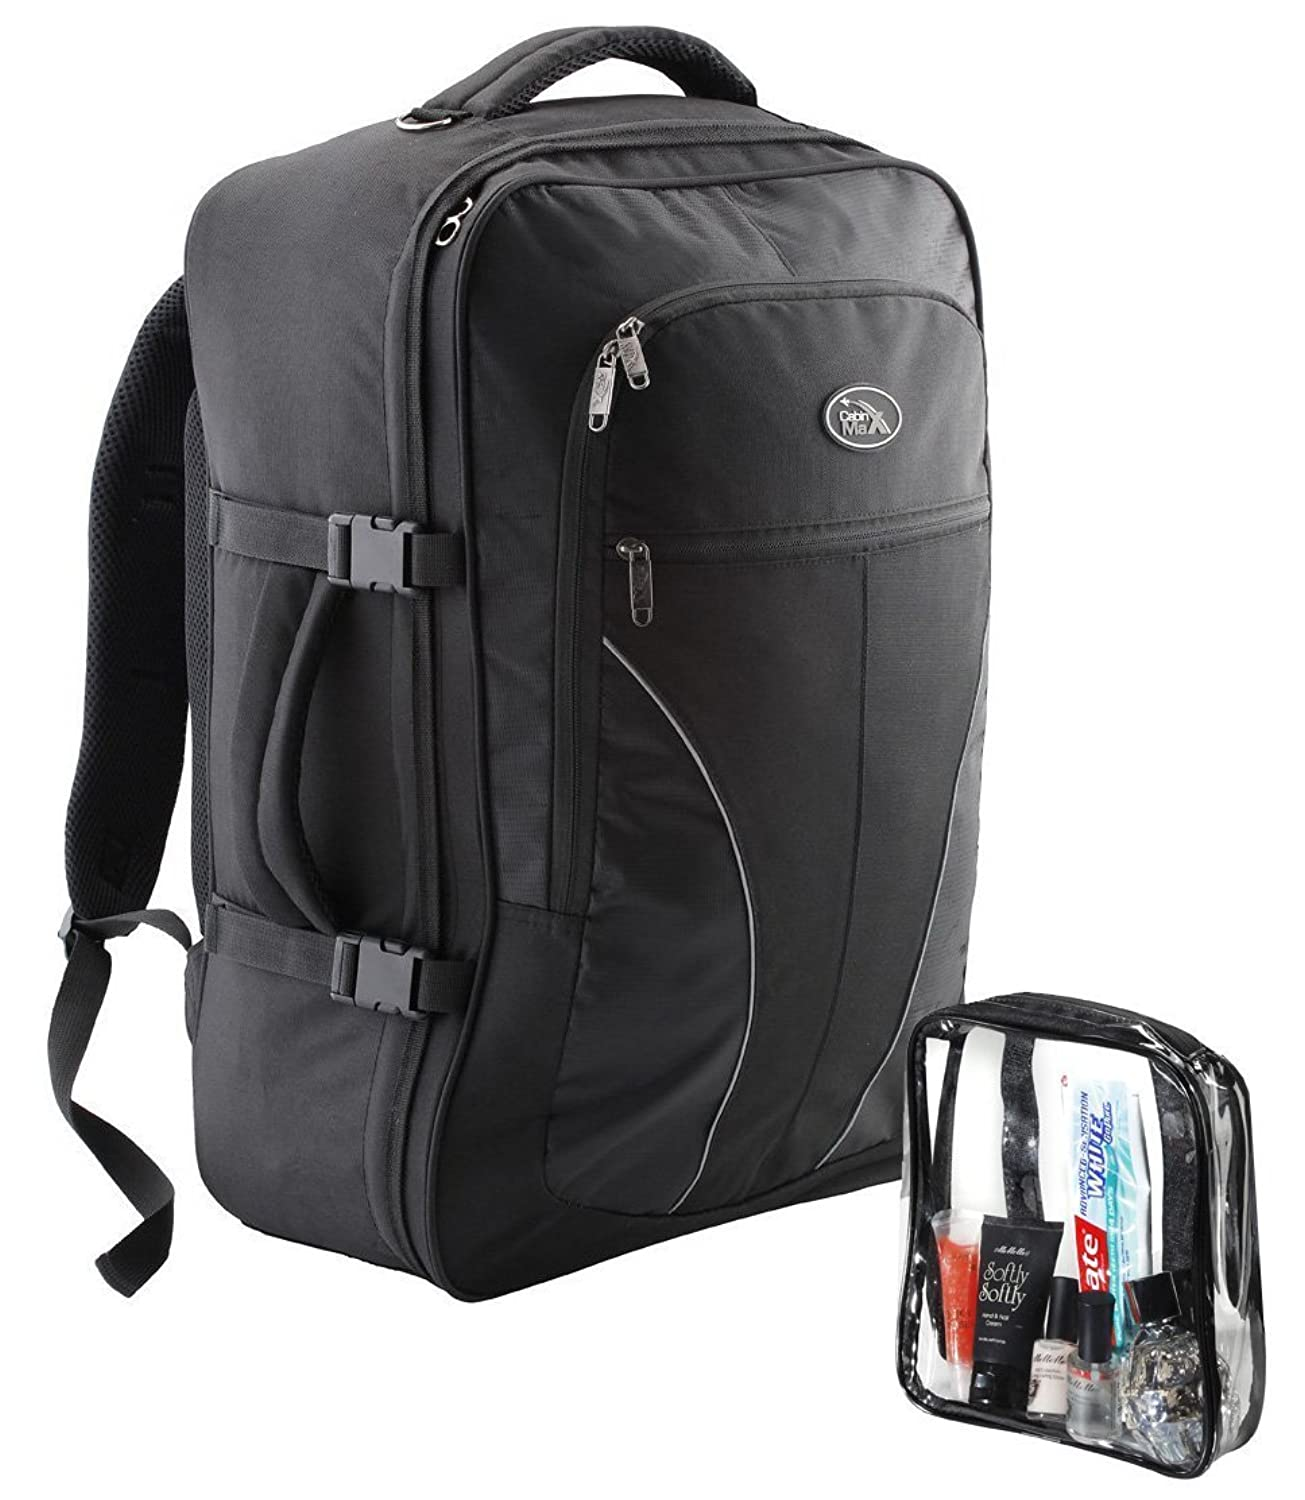 Gentil Amazon.com: Cabin Max Palermo Carry On Luggage Cabin Bag Detachable  Toiletry Bag 44 Litres (Black): Clothing